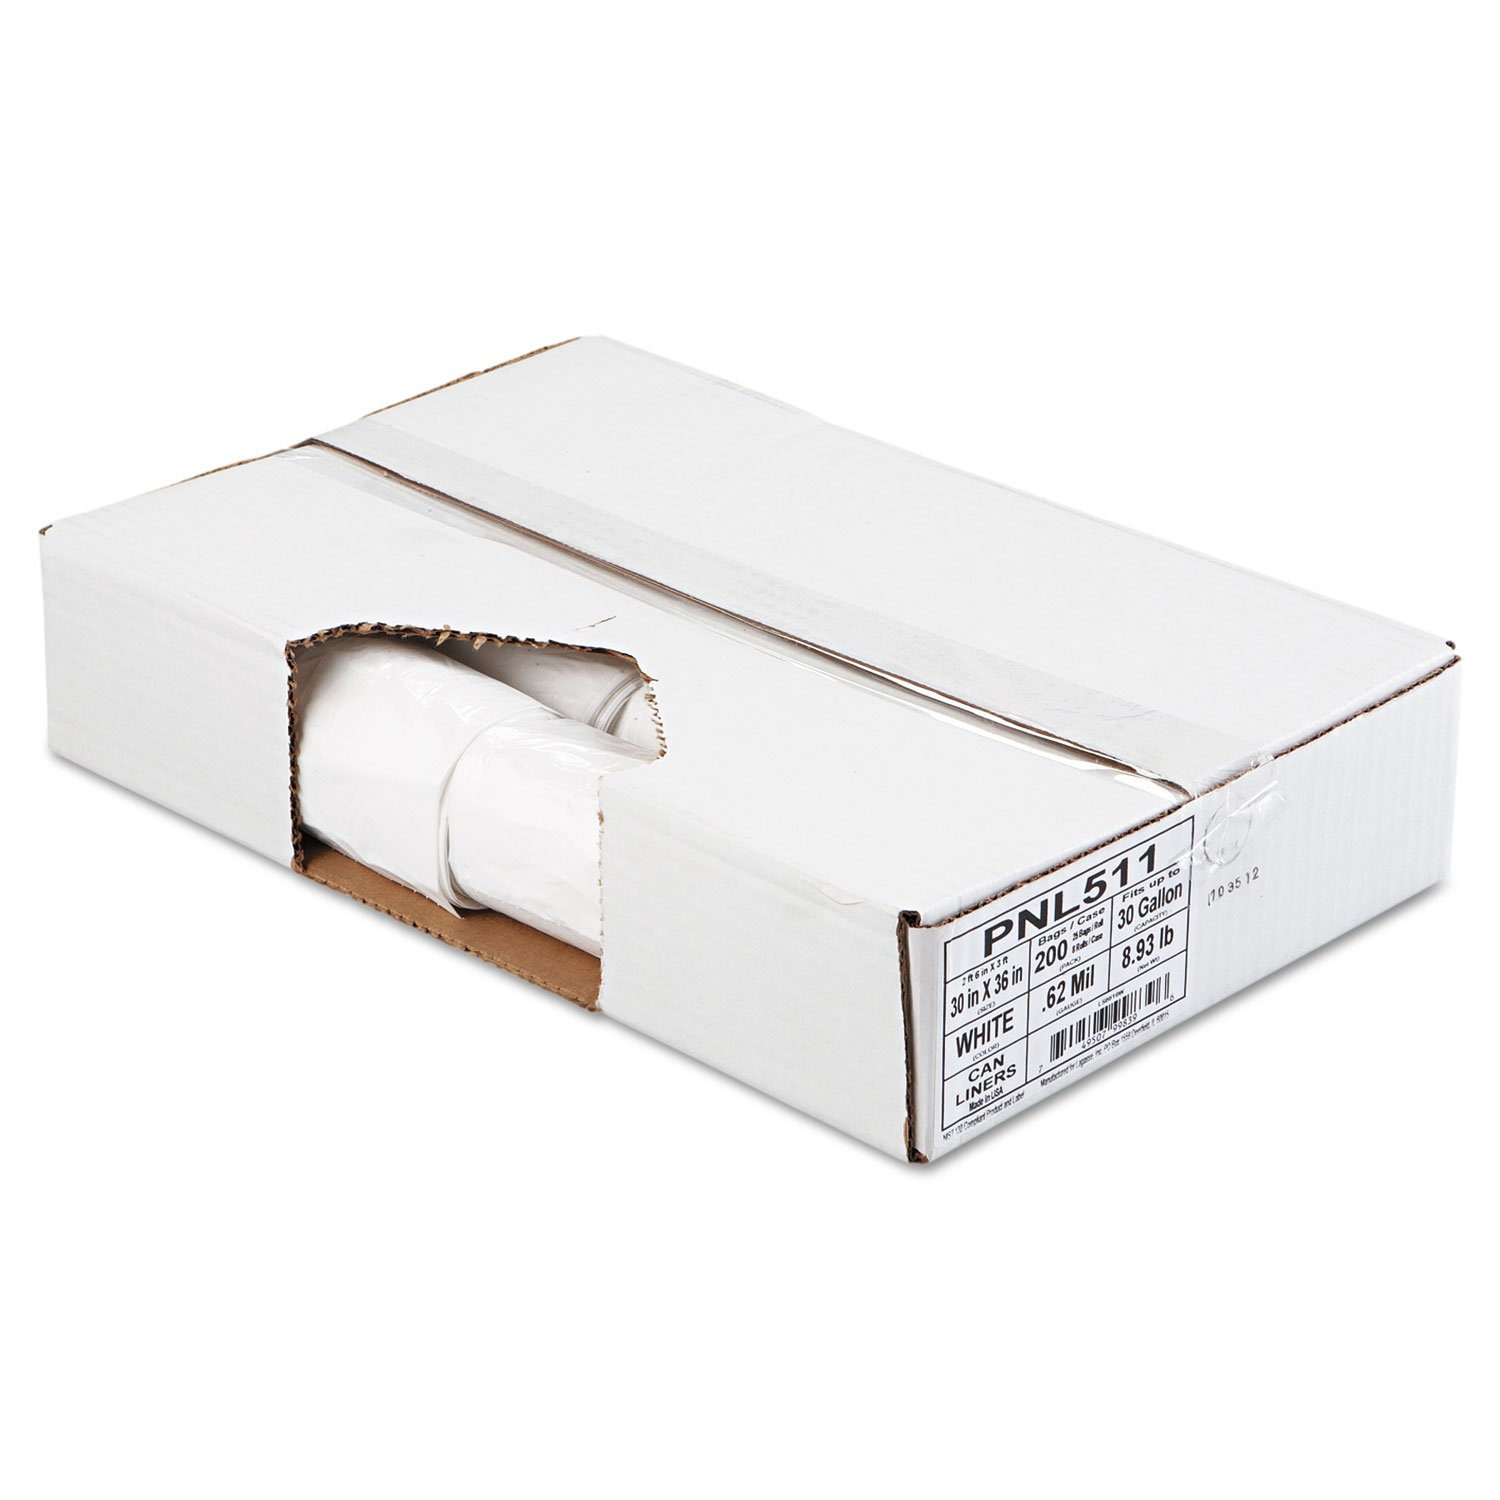 Penny Lane 511 Linear Low Density Can Liner, Perforated Coreless Roll.62Mil, 30x36 (Case of 200 Bags)